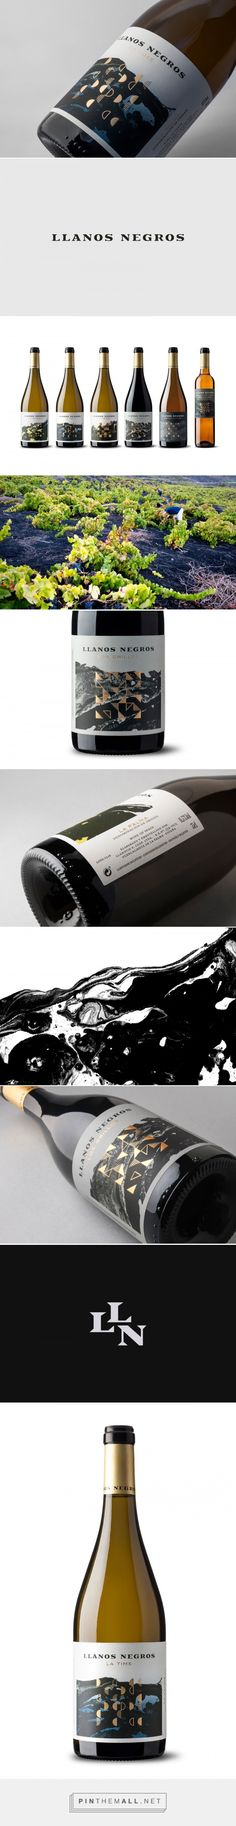 Llanos Negros - Packaging of the World - Creative Package Design Gallery - http://www.packagingoftheworld.com/2016/07/llanos-negros.html